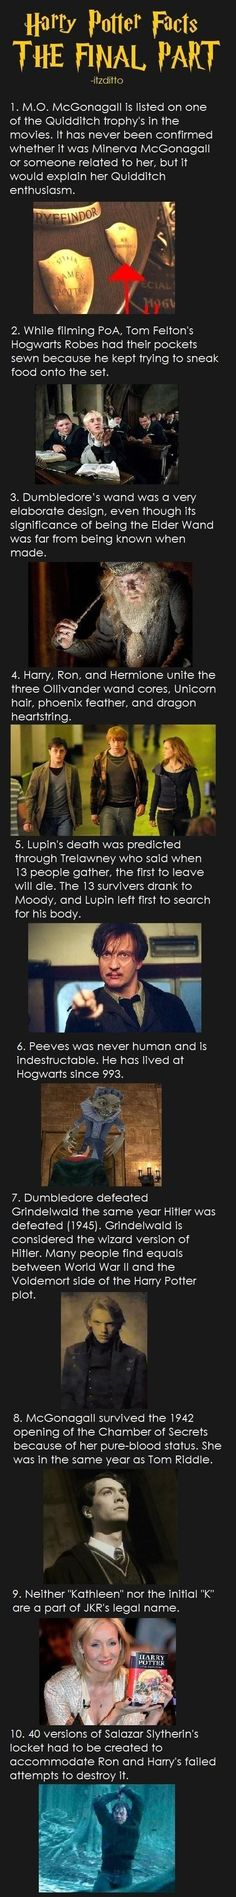 Number 5 was the one I hadnt seen before. - Imgur